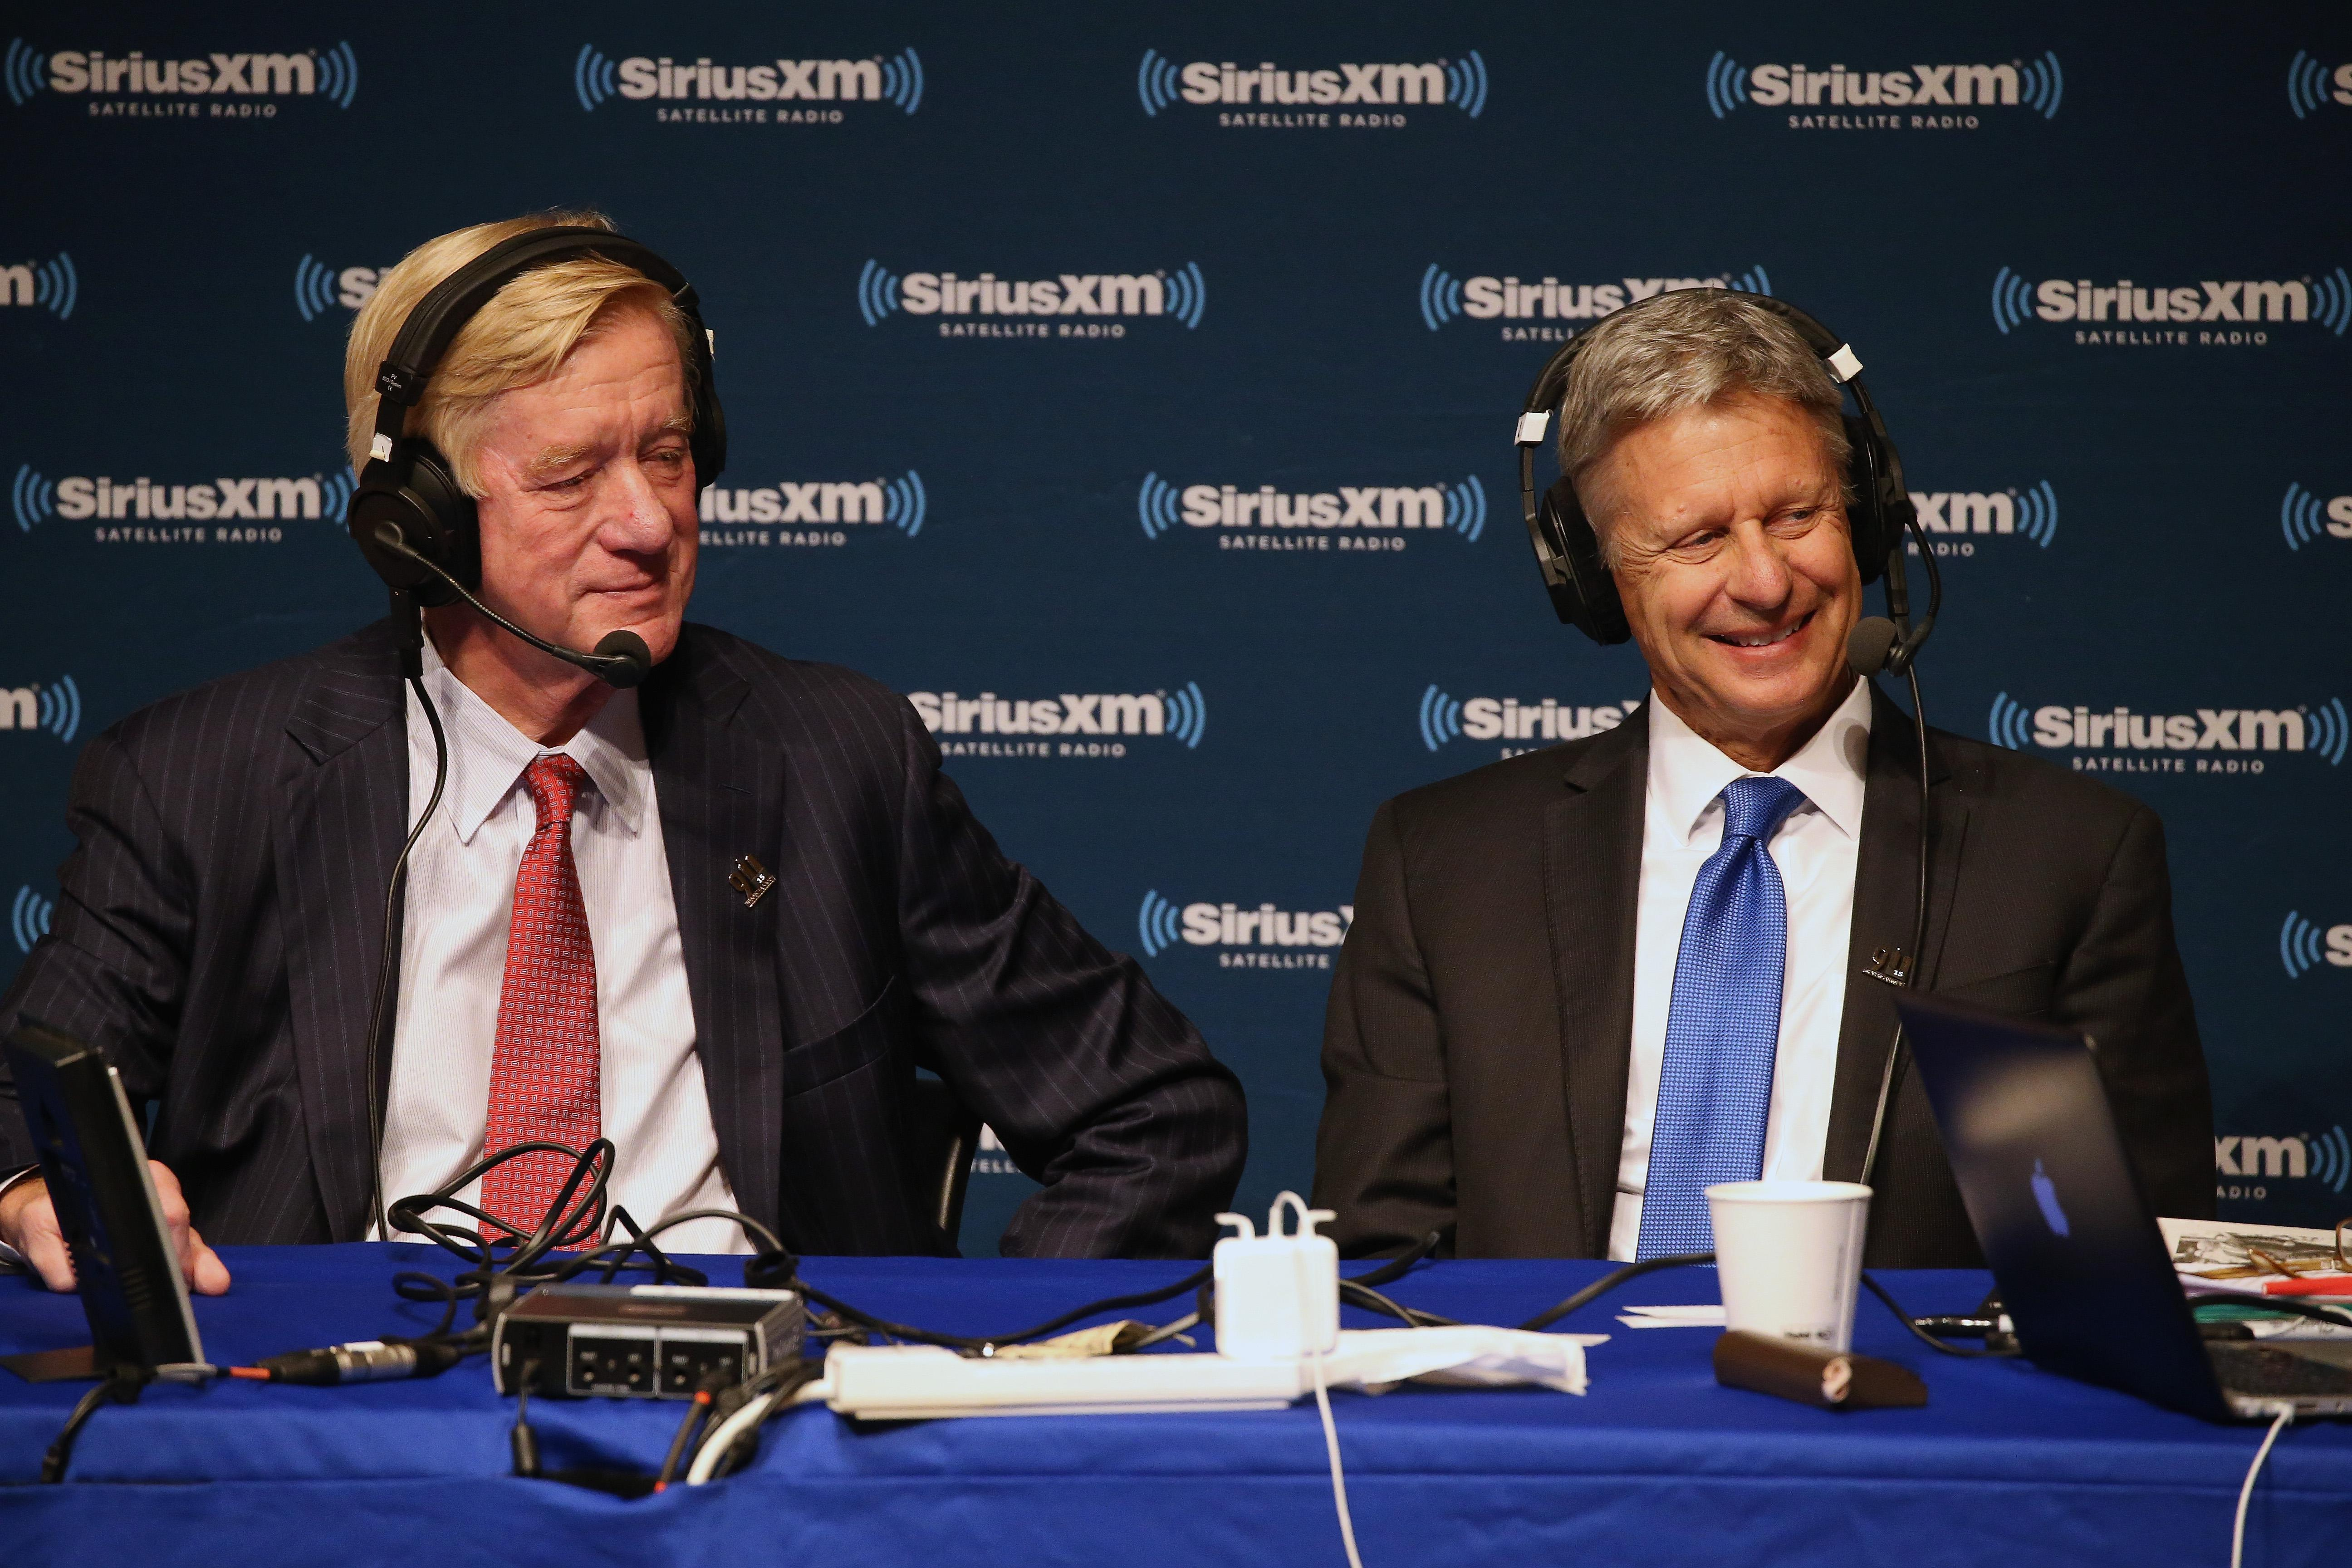 Bill Weld conducts an interview with SiriusXM in 2016.